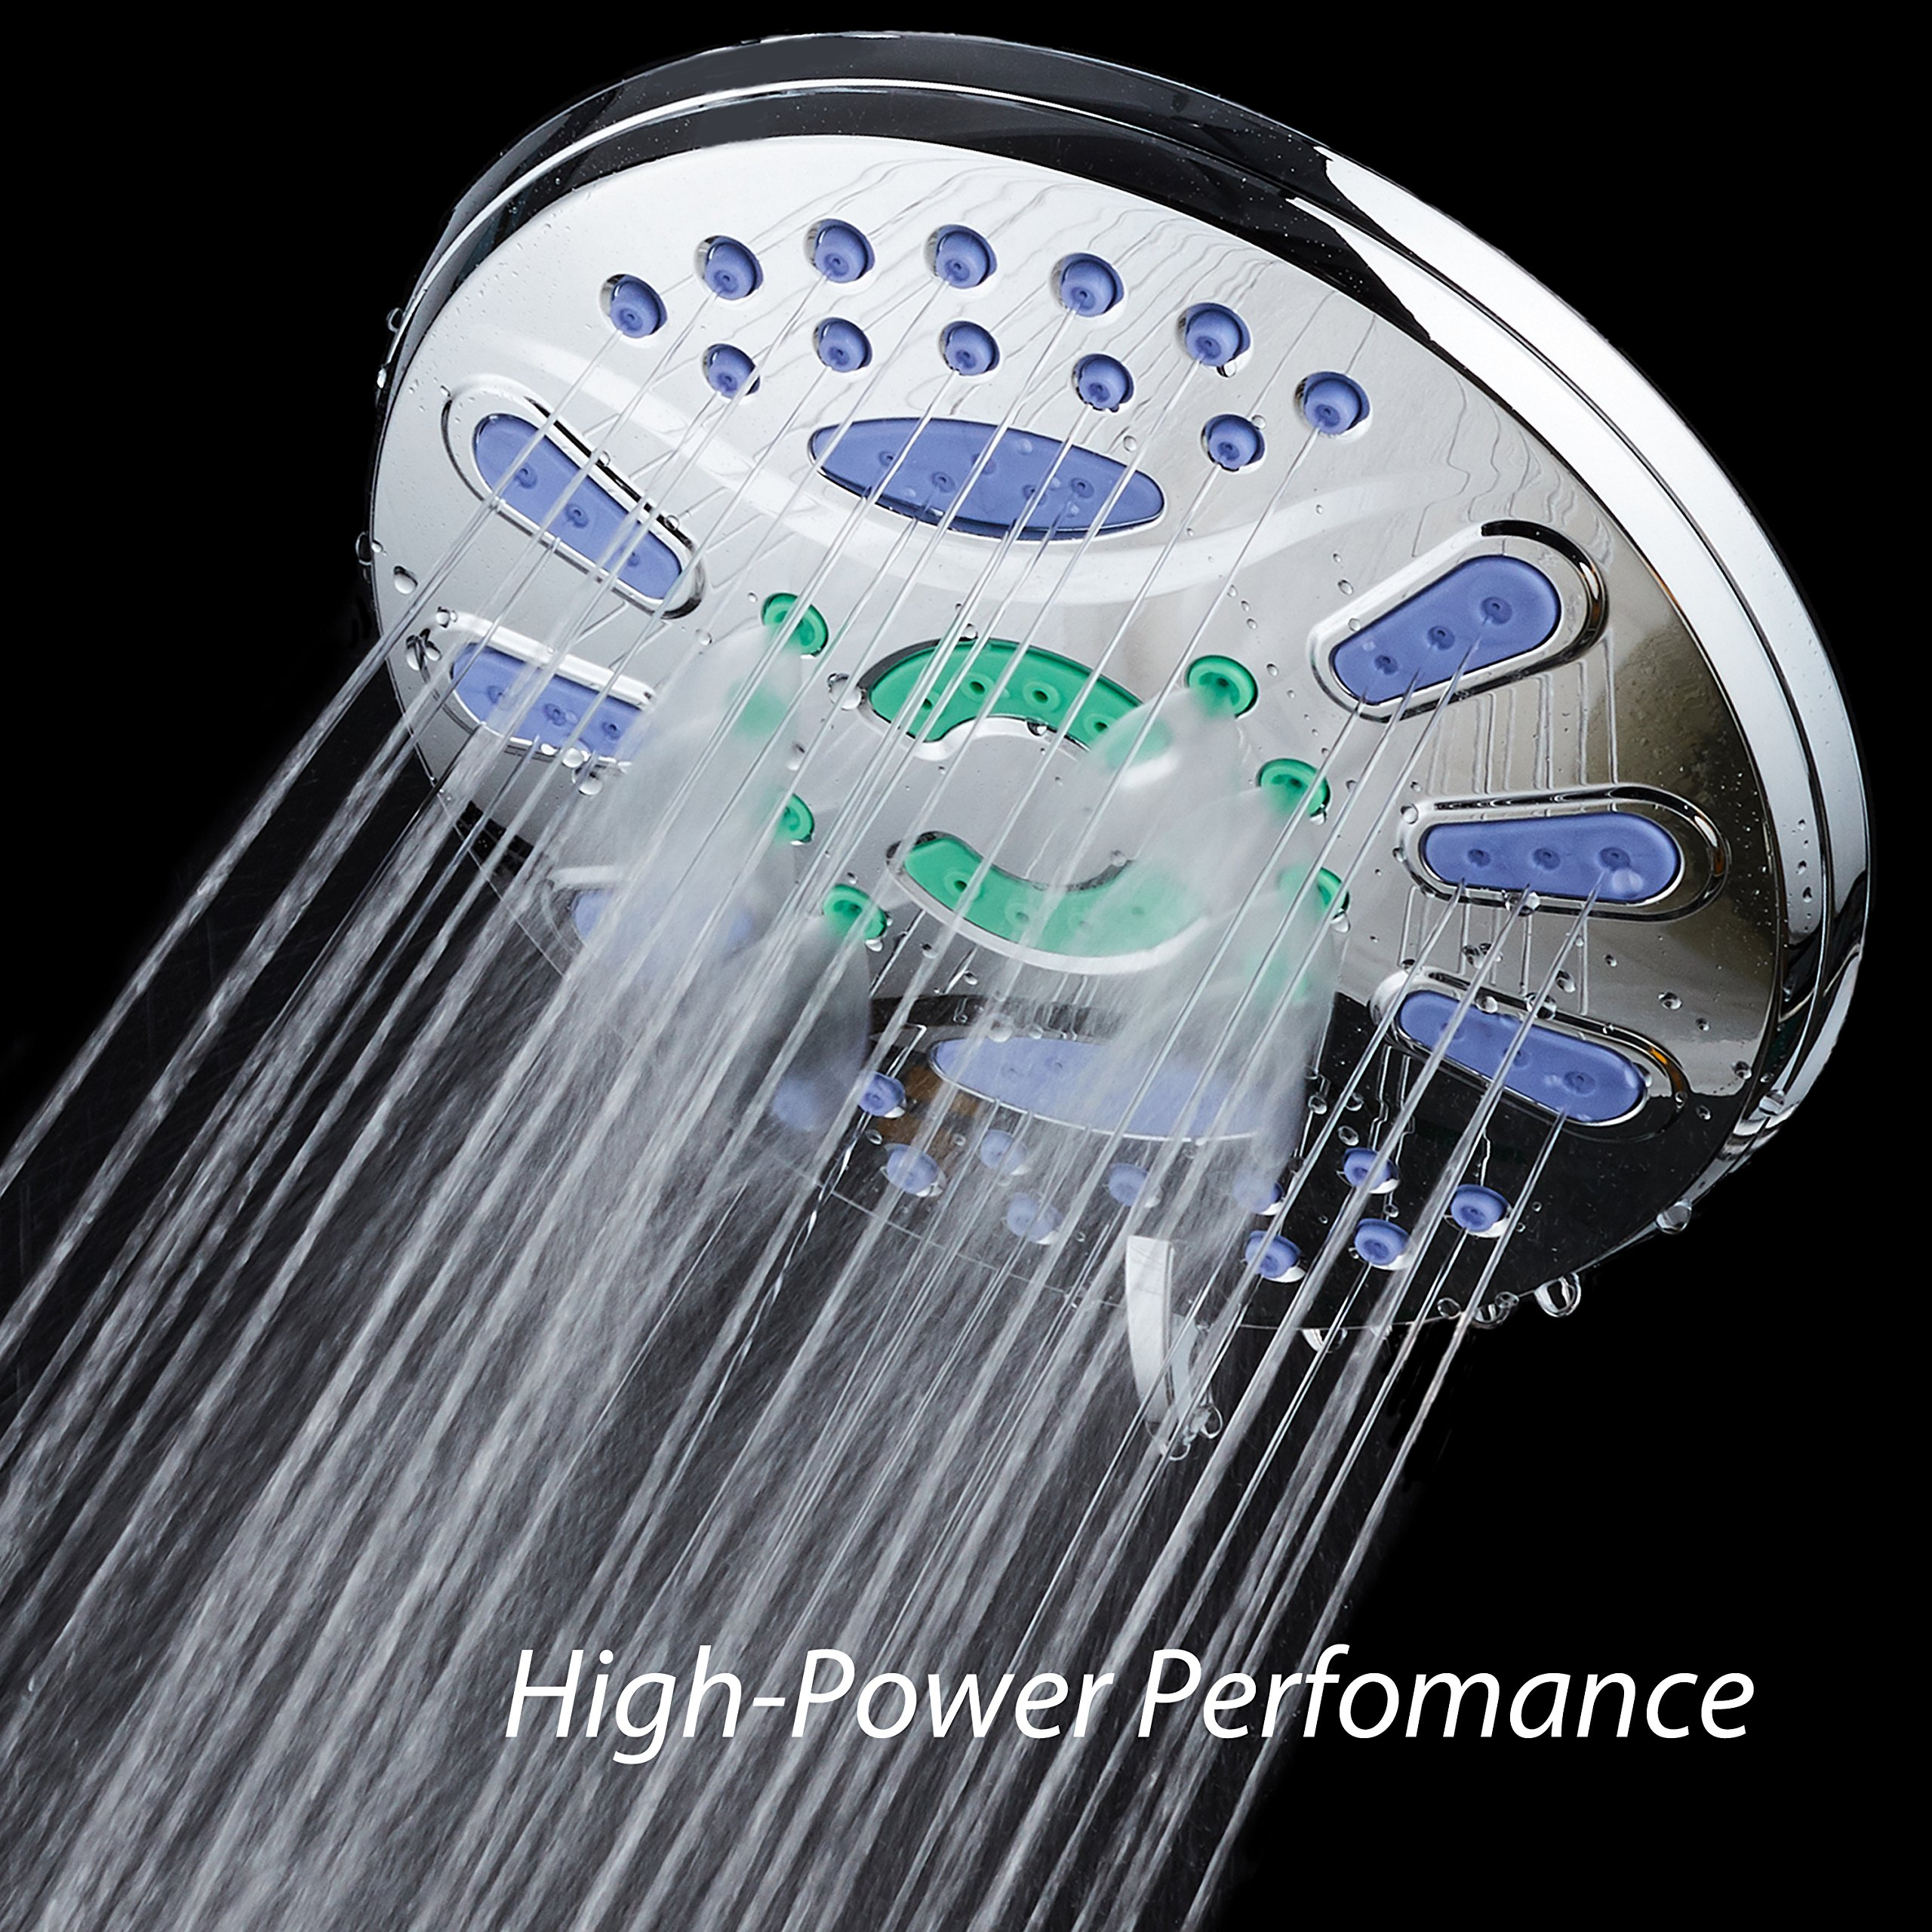 AquaStar Elite High-Pressure 7'' Giant 6-setting Luxury Spa Rain Shower Head with Microban Antimicrobial Anti-Clog Jets for More Power & Less Cleaning! / Solid Brass Ball Join/All Chrome Finish by AquaStar (Image #5)